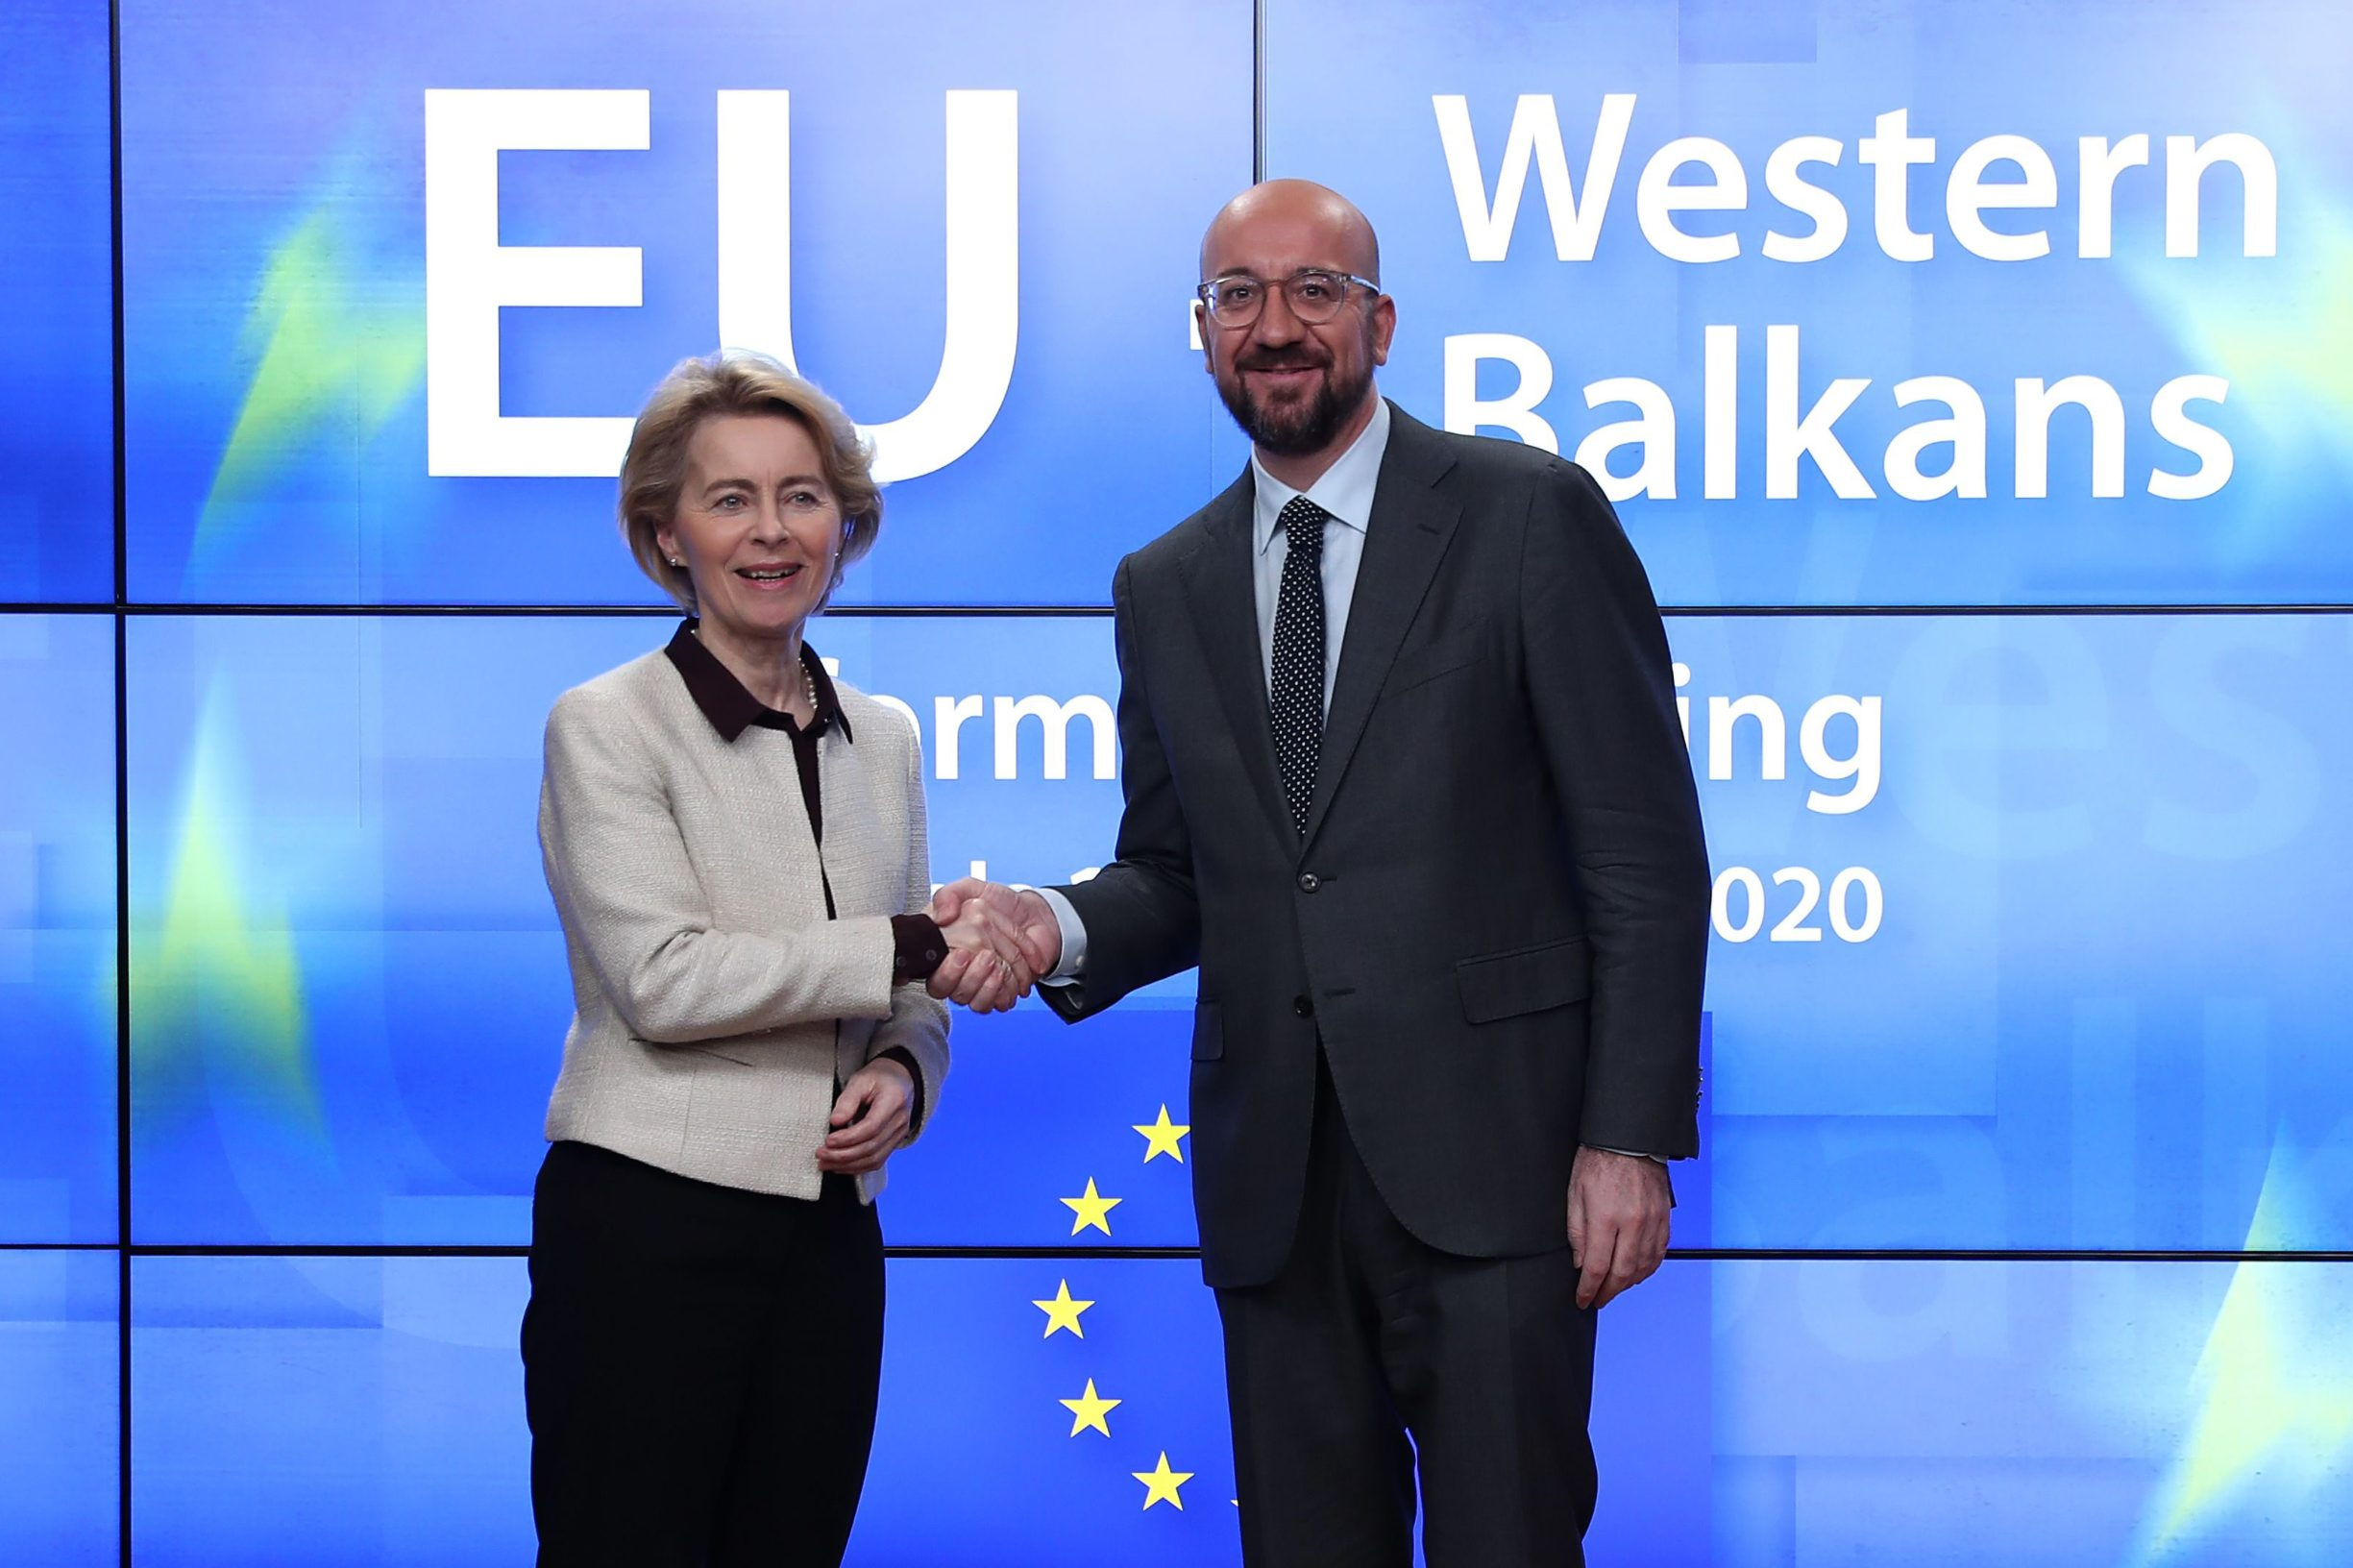 European Commission President Ursula von der Leyen (L) is greeted by European Council President Charles Michel as he arrives for a meeting of the EU-Western Balkans Summit at the EU headquarters in Brussels on February 16, 2020. (Photo by Aris Oikonomou / AFP)